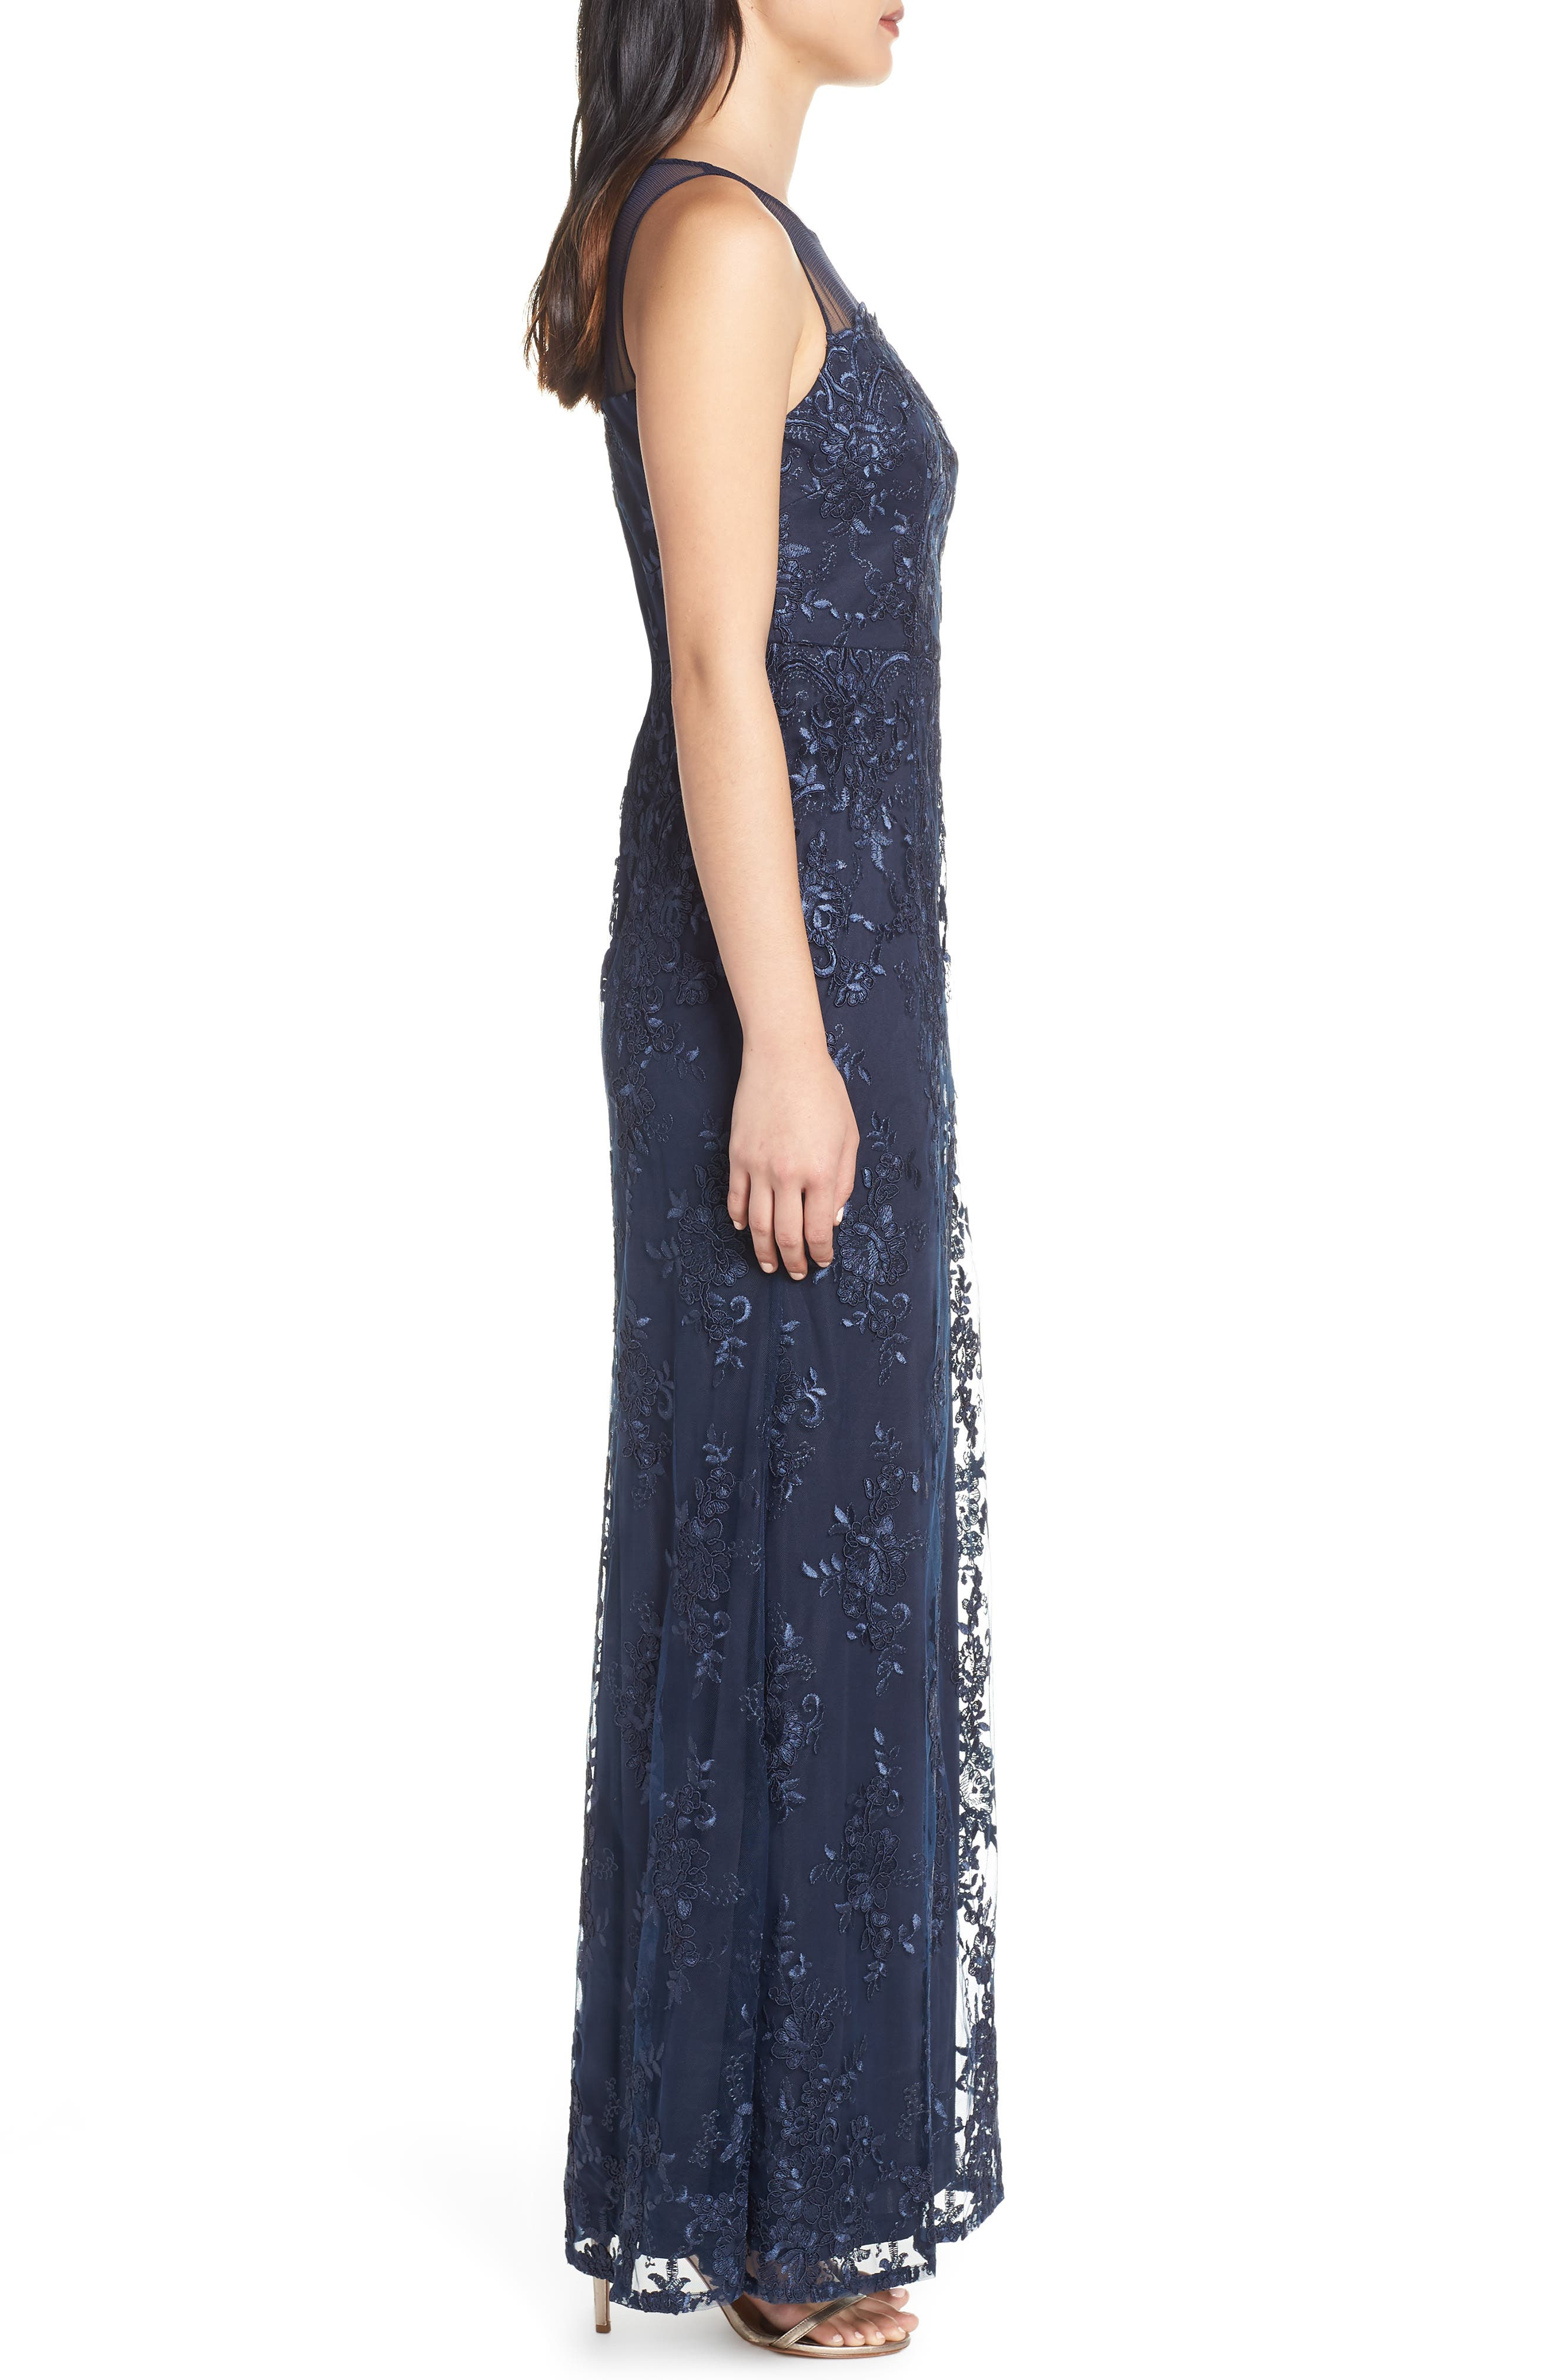 ADRIANNA PAPELL,                             Corded Lace Evening Dress,                             Alternate thumbnail 4, color,                             MIDNIGHT